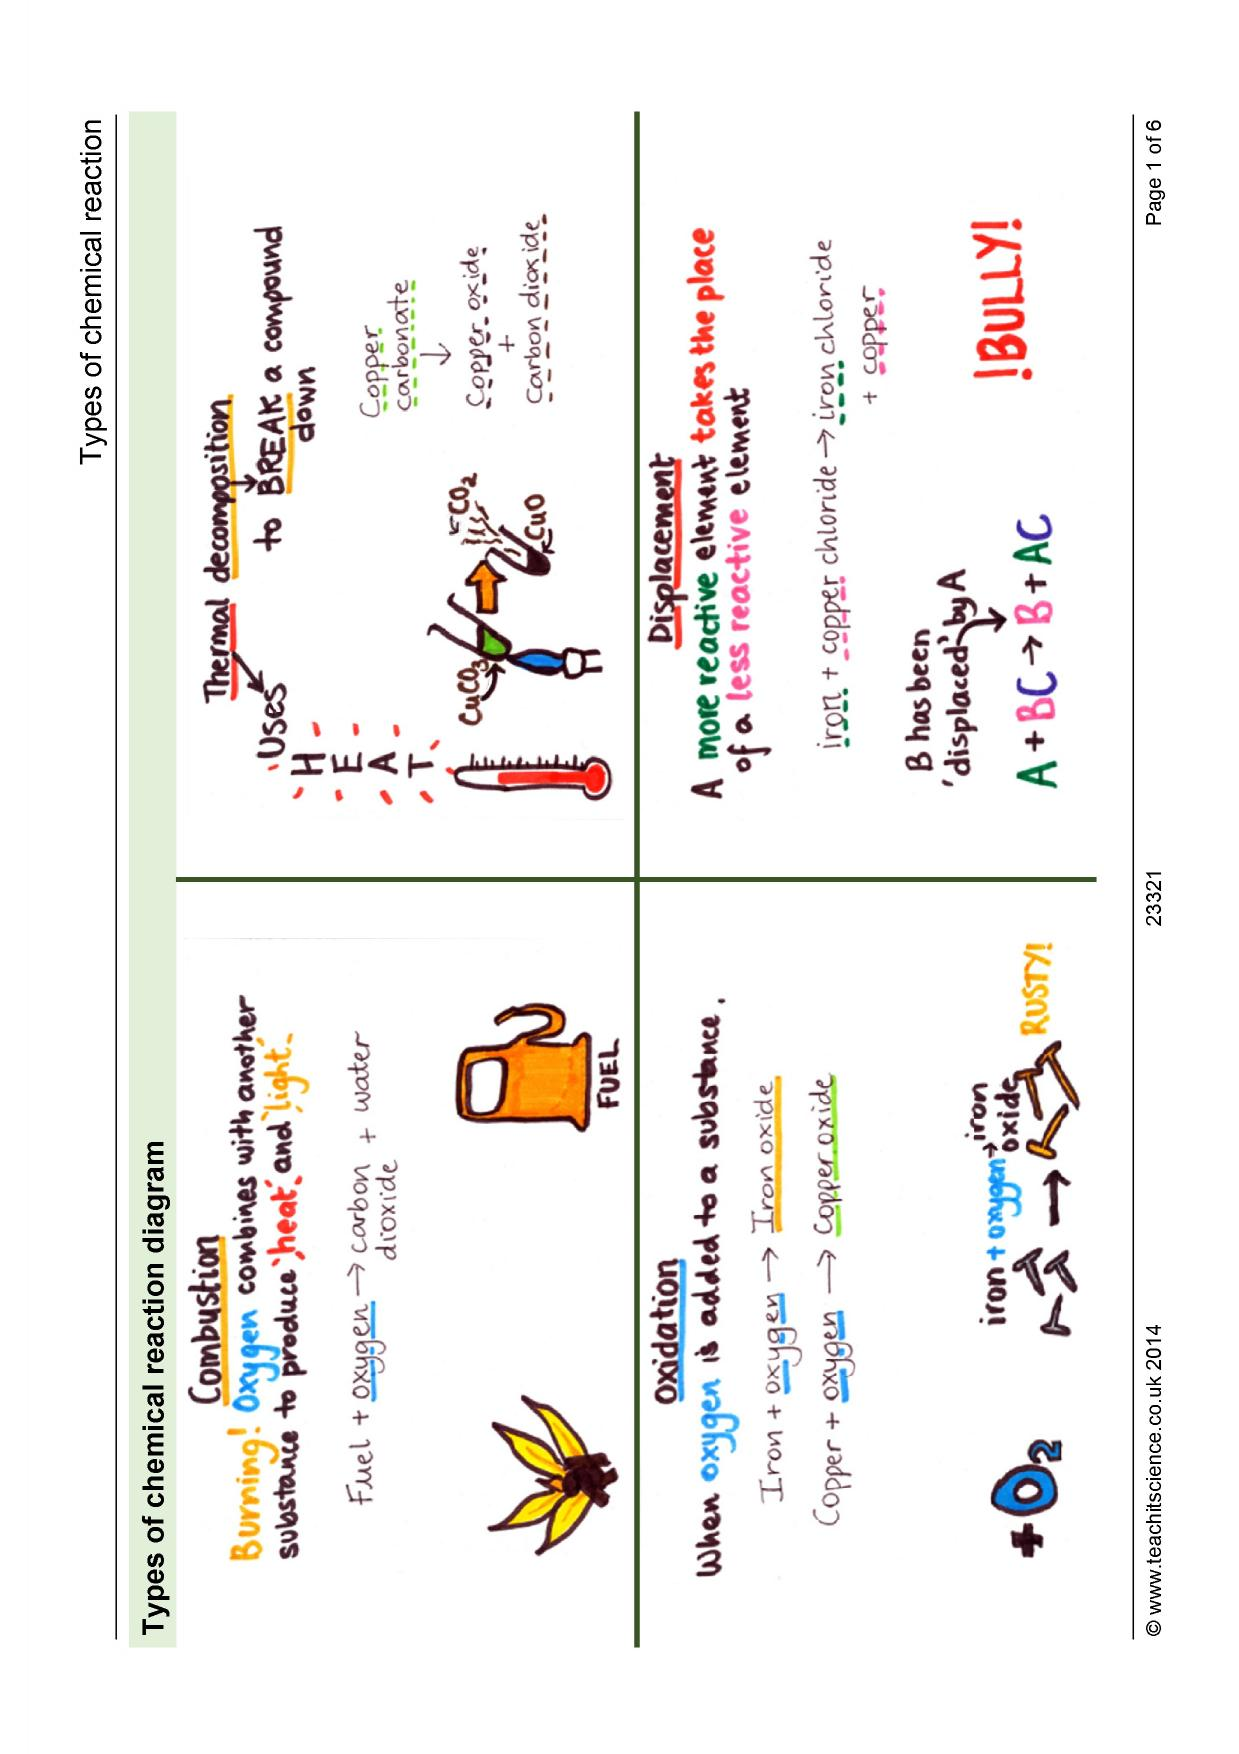 Ks3 Science Science Syllabus